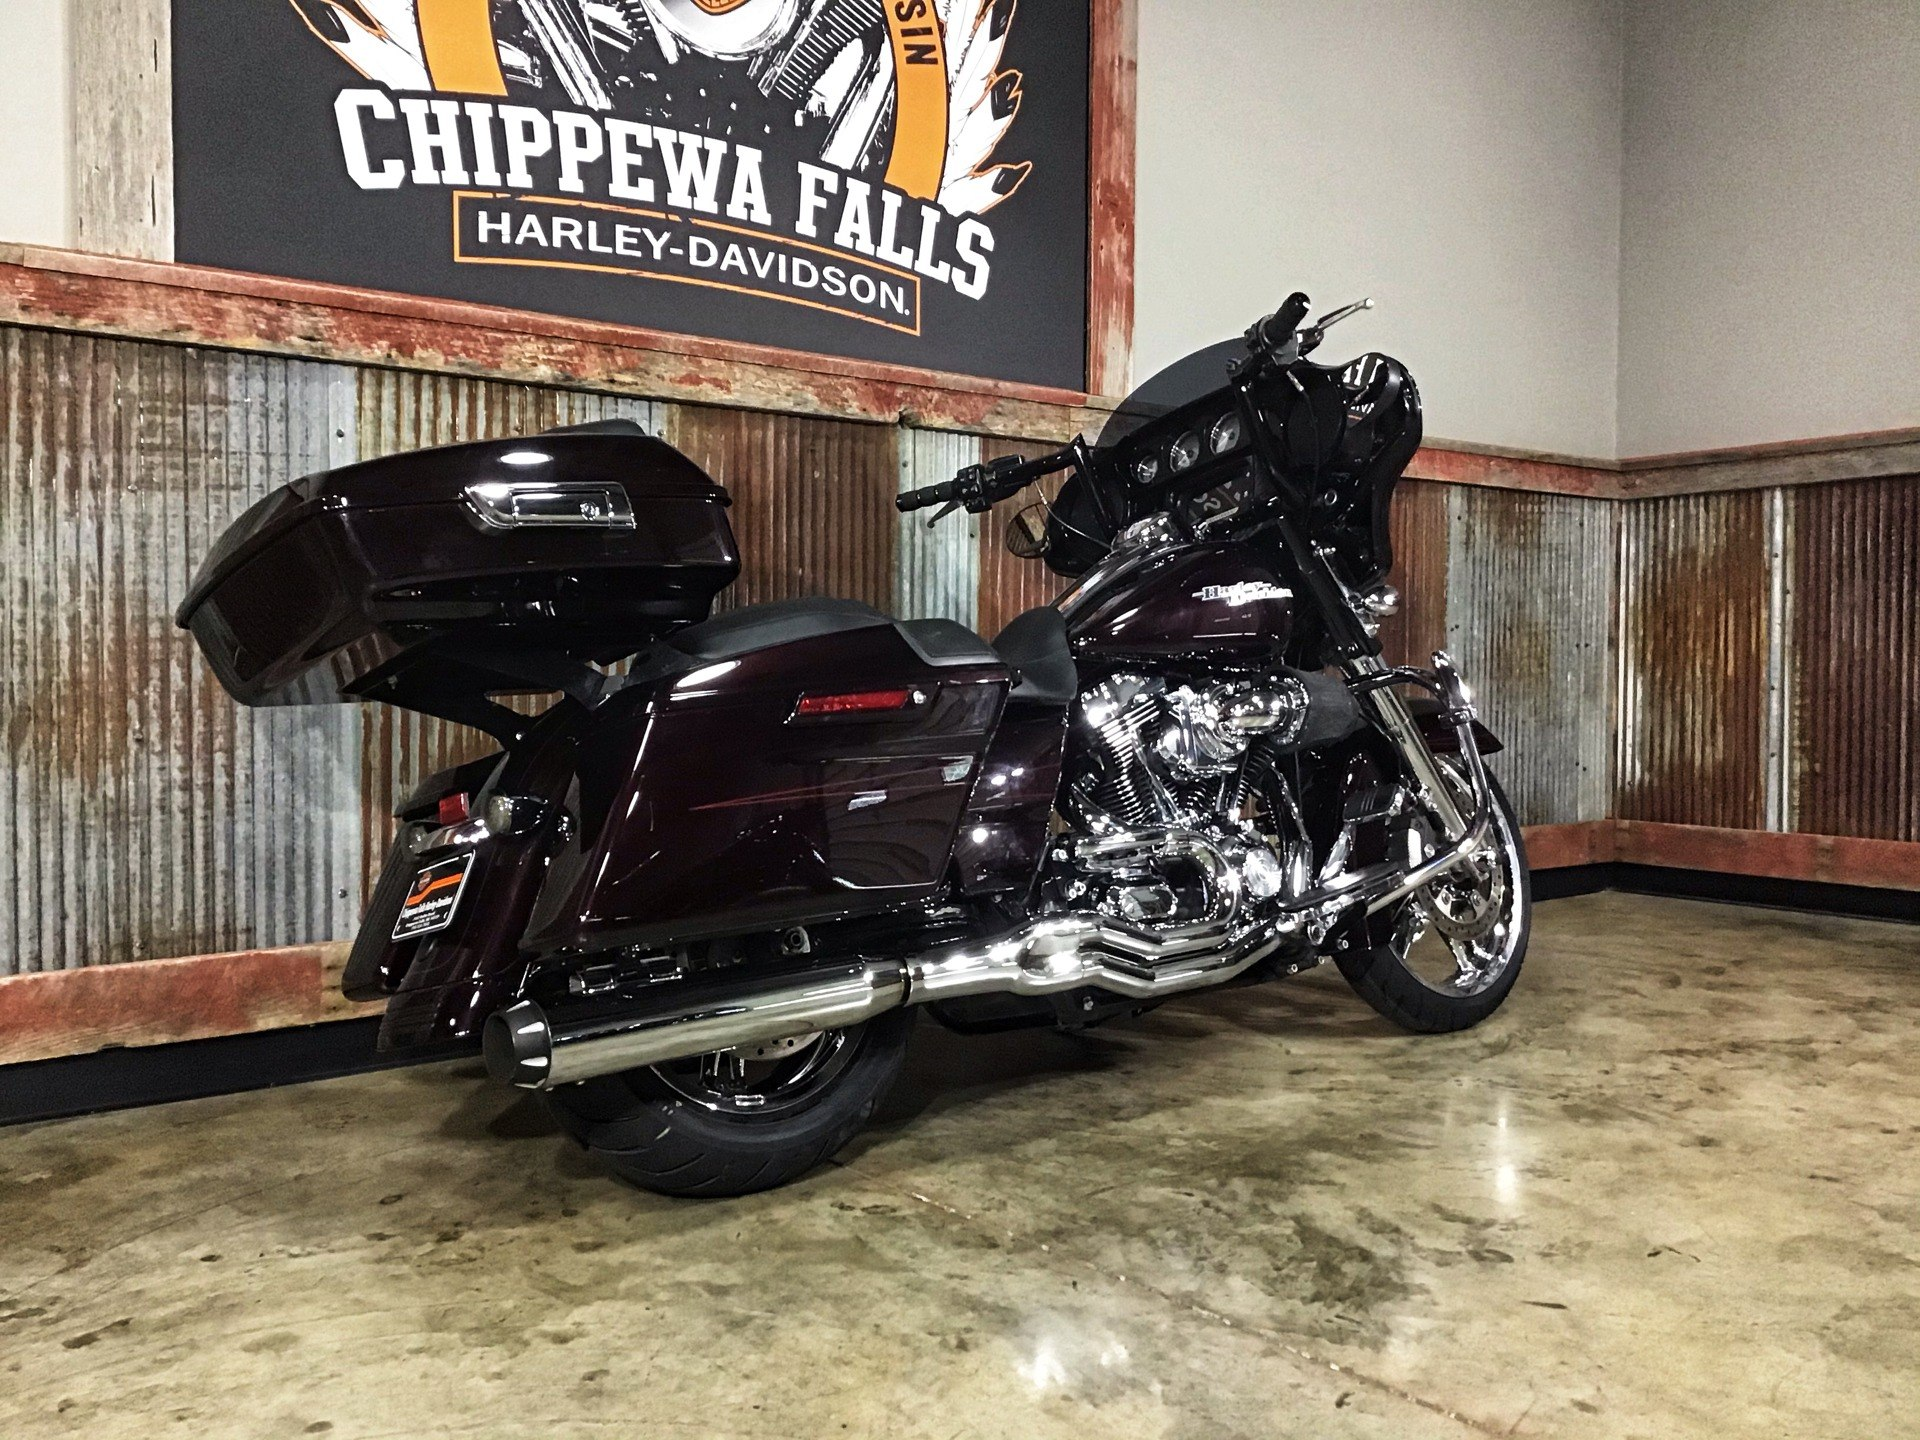 2014 Harley-Davidson Street Glide® Special in Chippewa Falls, Wisconsin - Photo 7